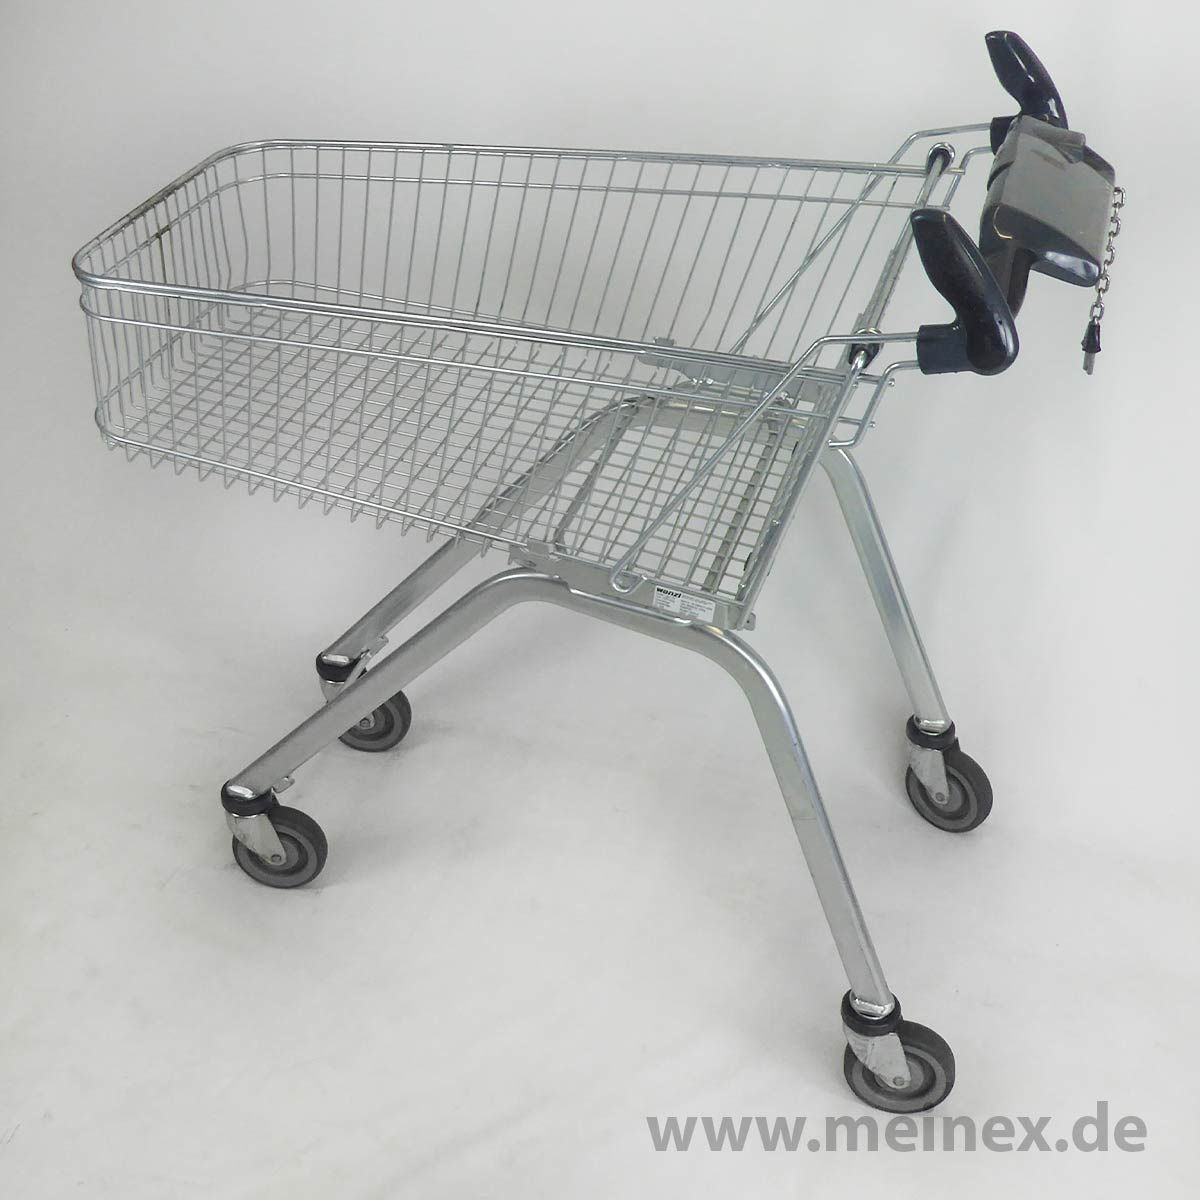 Shopping Trolley Wanzl Light 100 Promotional Handle Used